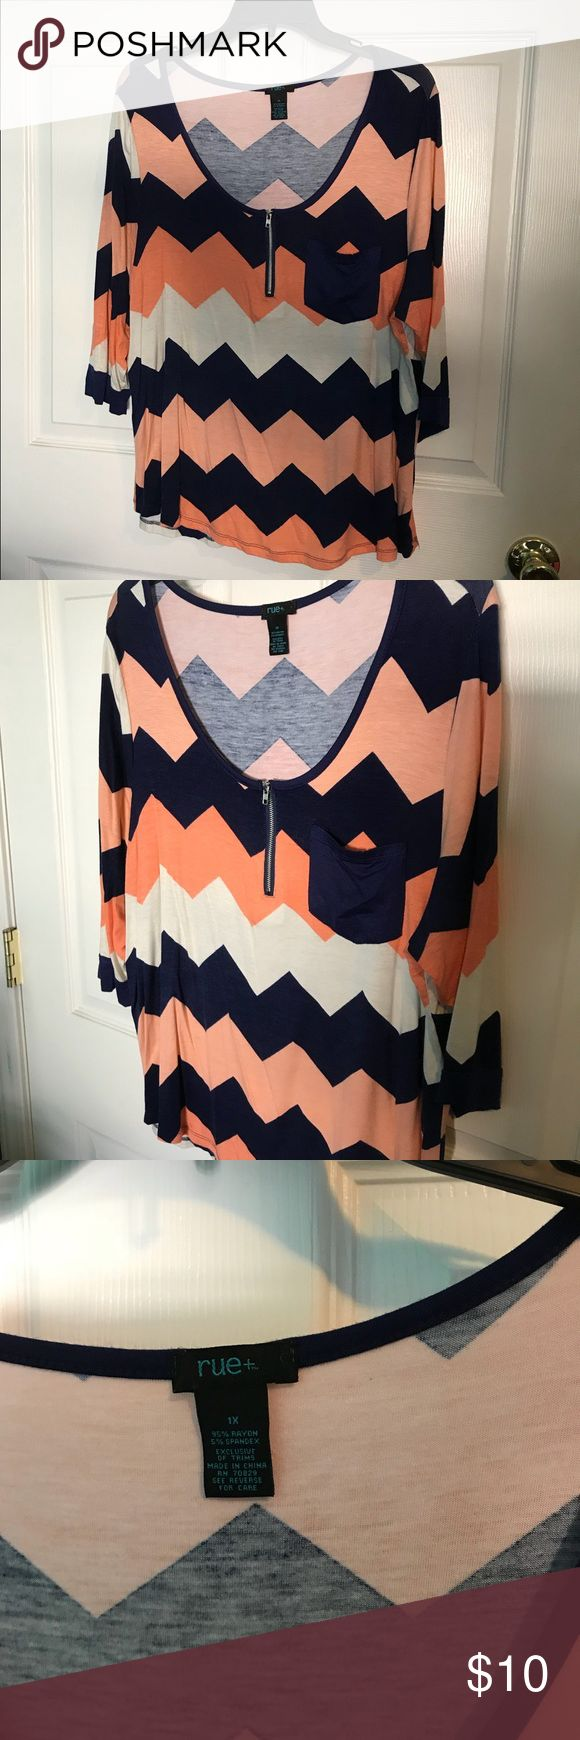 Rue 21 Peach, Navy and White Chevron Top Very cute and well cared for...you'll LOVE this comfy top! The beautiful colors with the chevron print makes this top pop! Even though this is a preloved top, it shows no visible signs of wear. Rue 21 Tops Tees - Long Sleeve